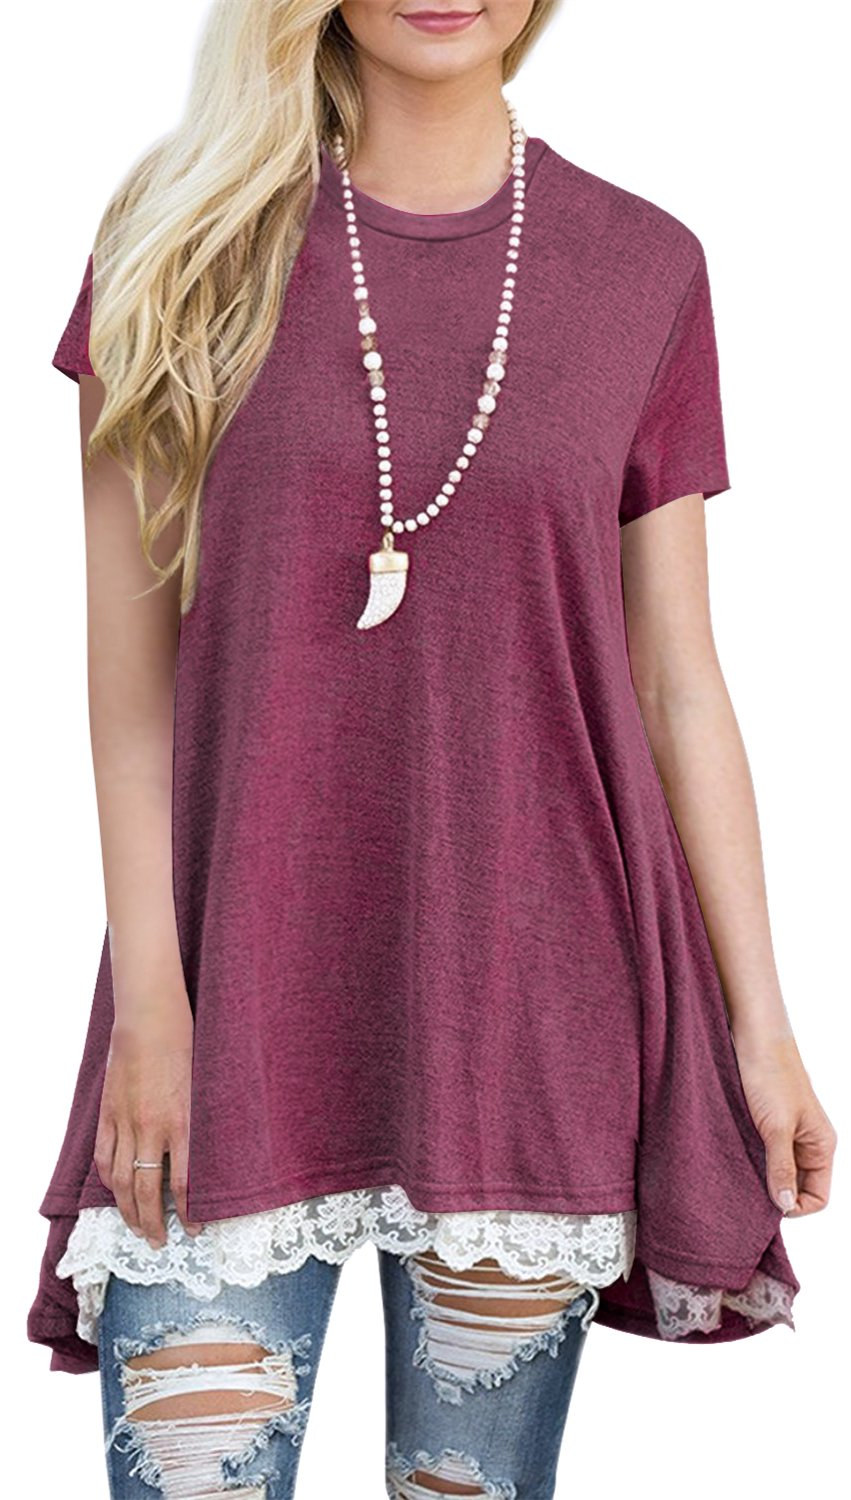 Womens Short Sleeve A-Line Flowy Tunic Tops Lace Trim Shirt Blouse 4X-Large Wine Red